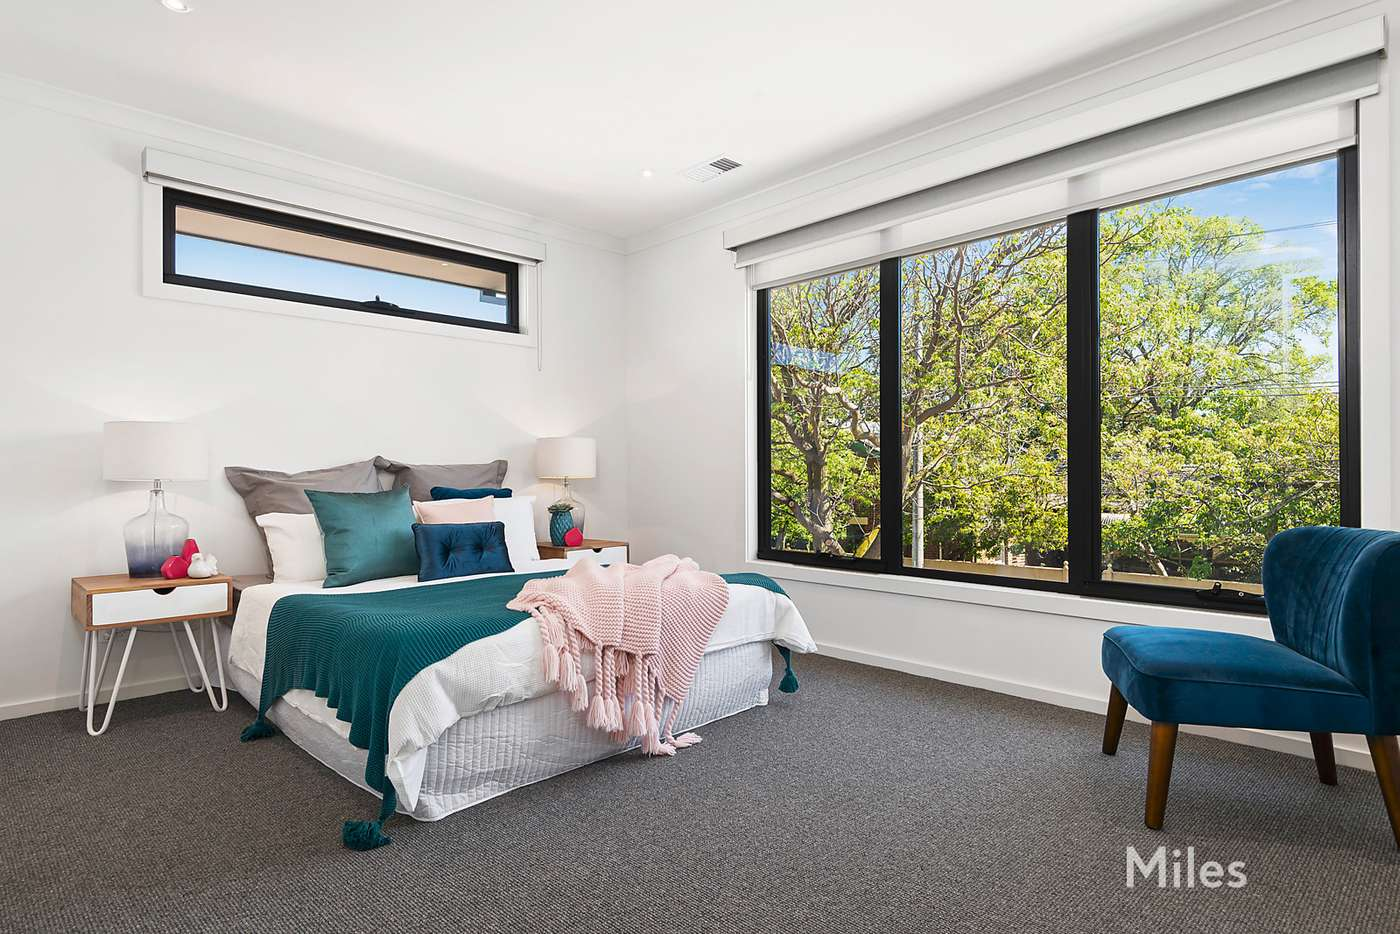 Sixth view of Homely house listing, 2 Melcombe Road, Ivanhoe VIC 3079